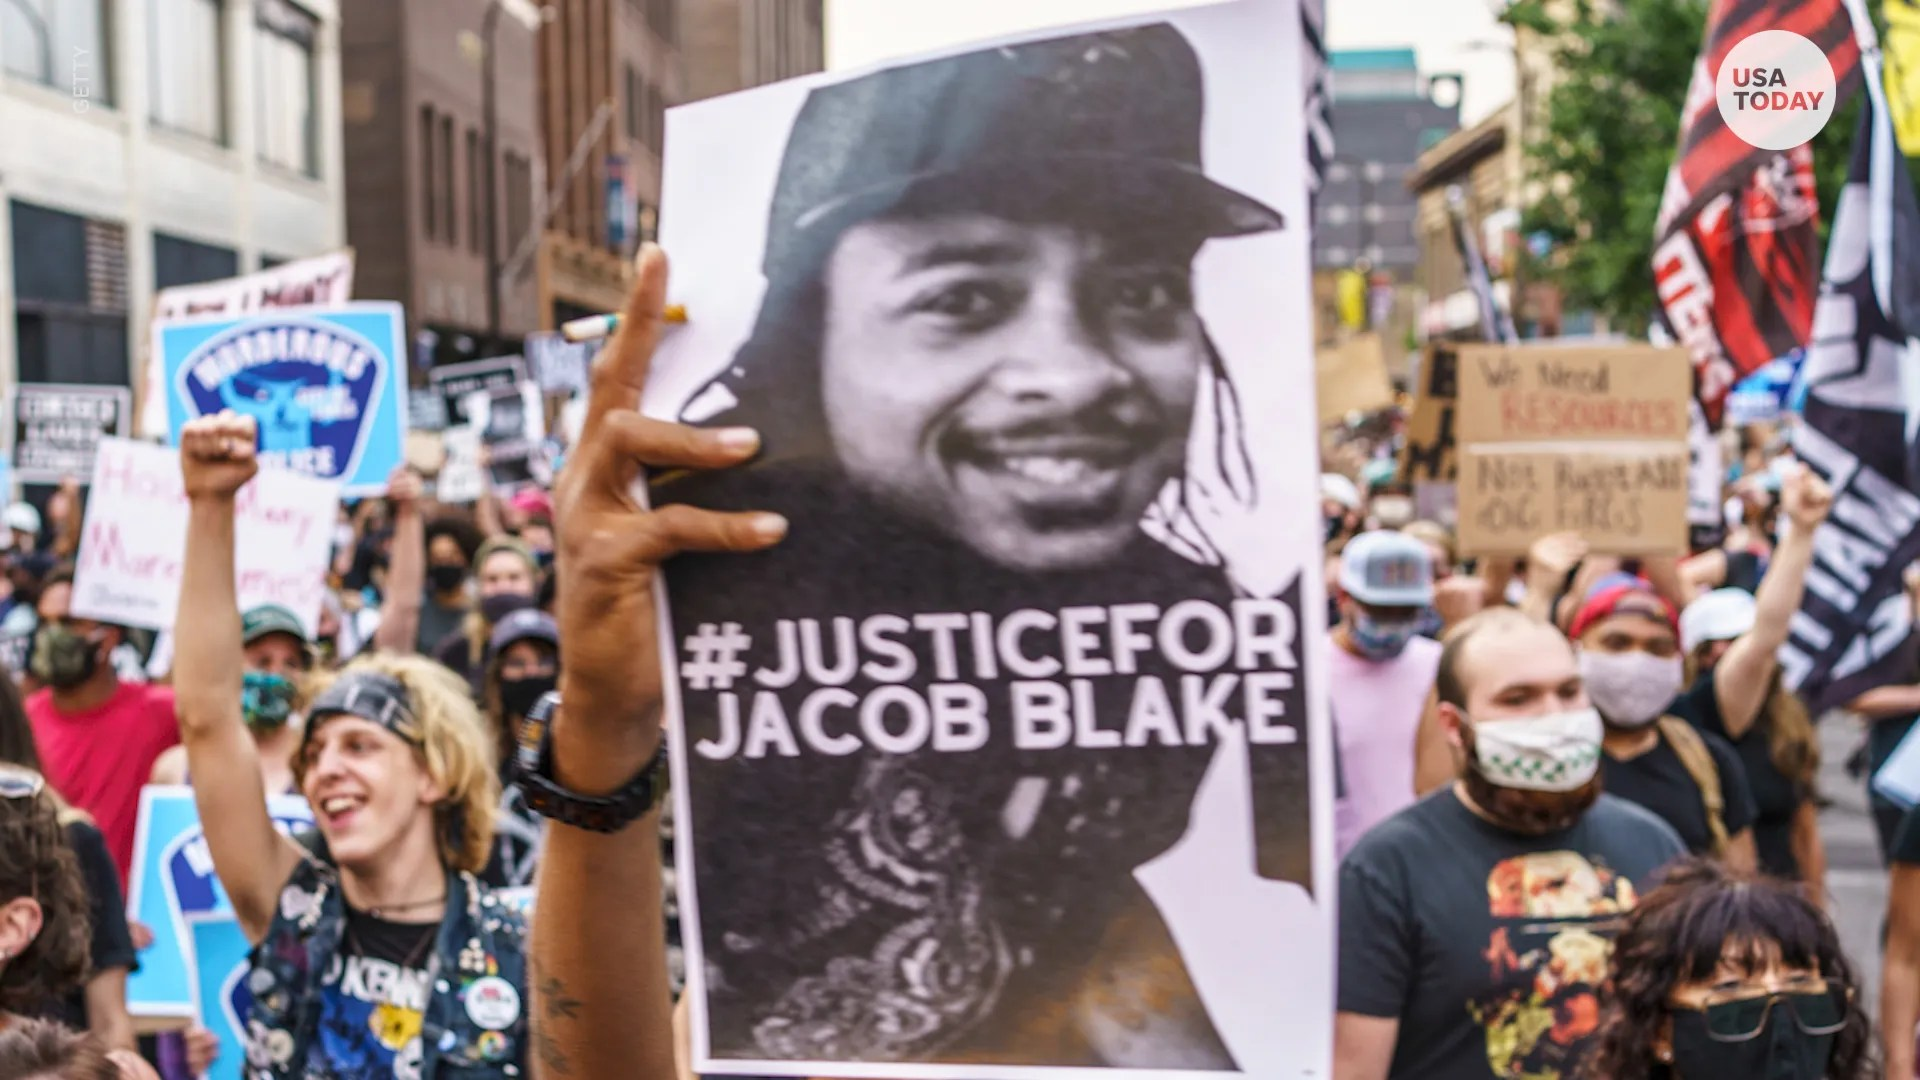 Stars are calling for justice and weighing in on Jacob Blake, a Black man who was shot in the back multiple times by police in Wisconsin.